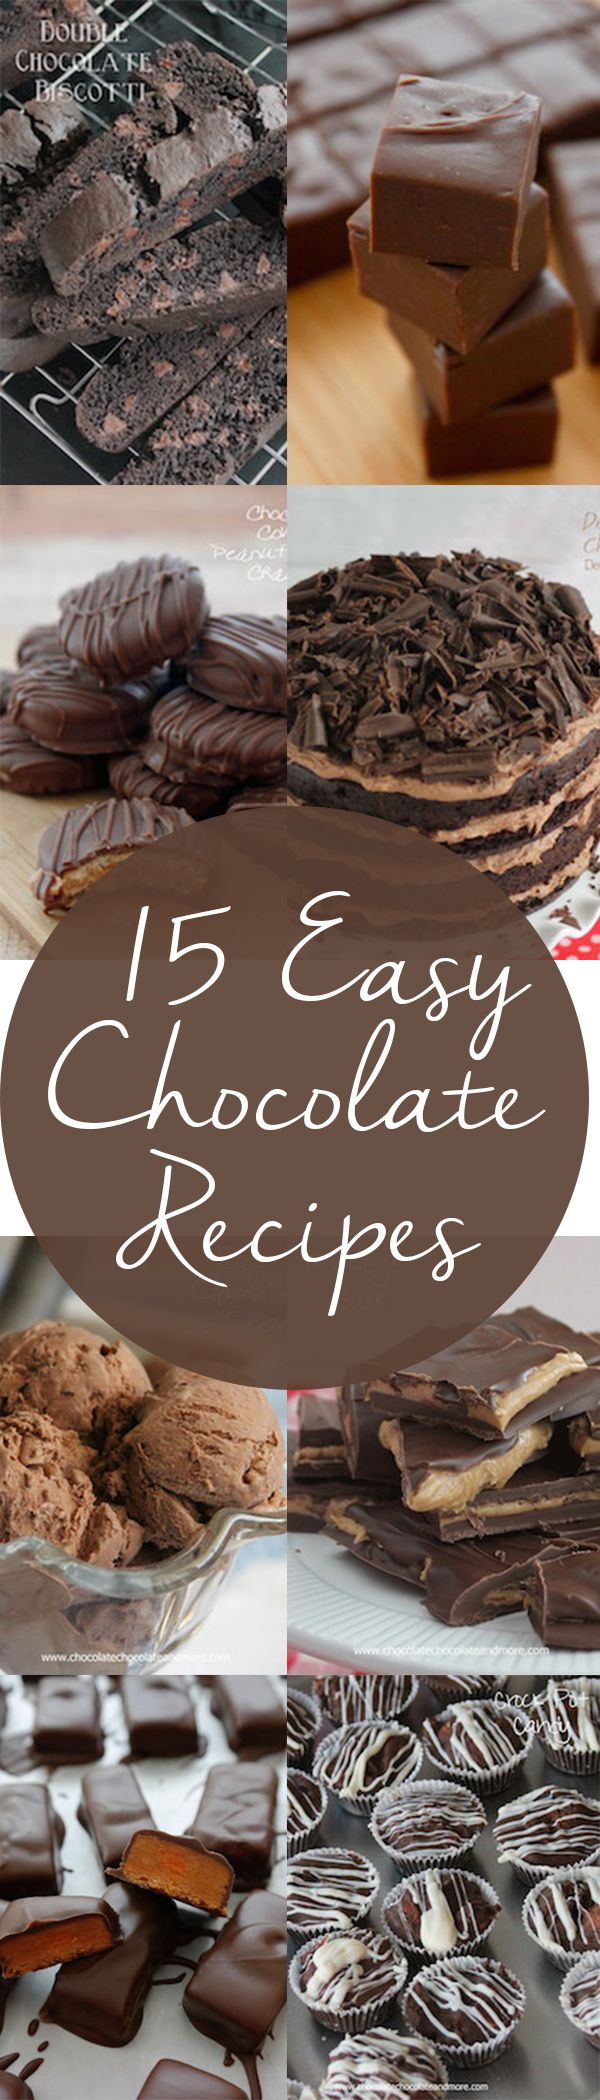 15 Easy Chocolate Recipes for when those chocolate cravings hit! Cookies, candy, cake, ice cream, dip, and more. Don't say no to chocolate.